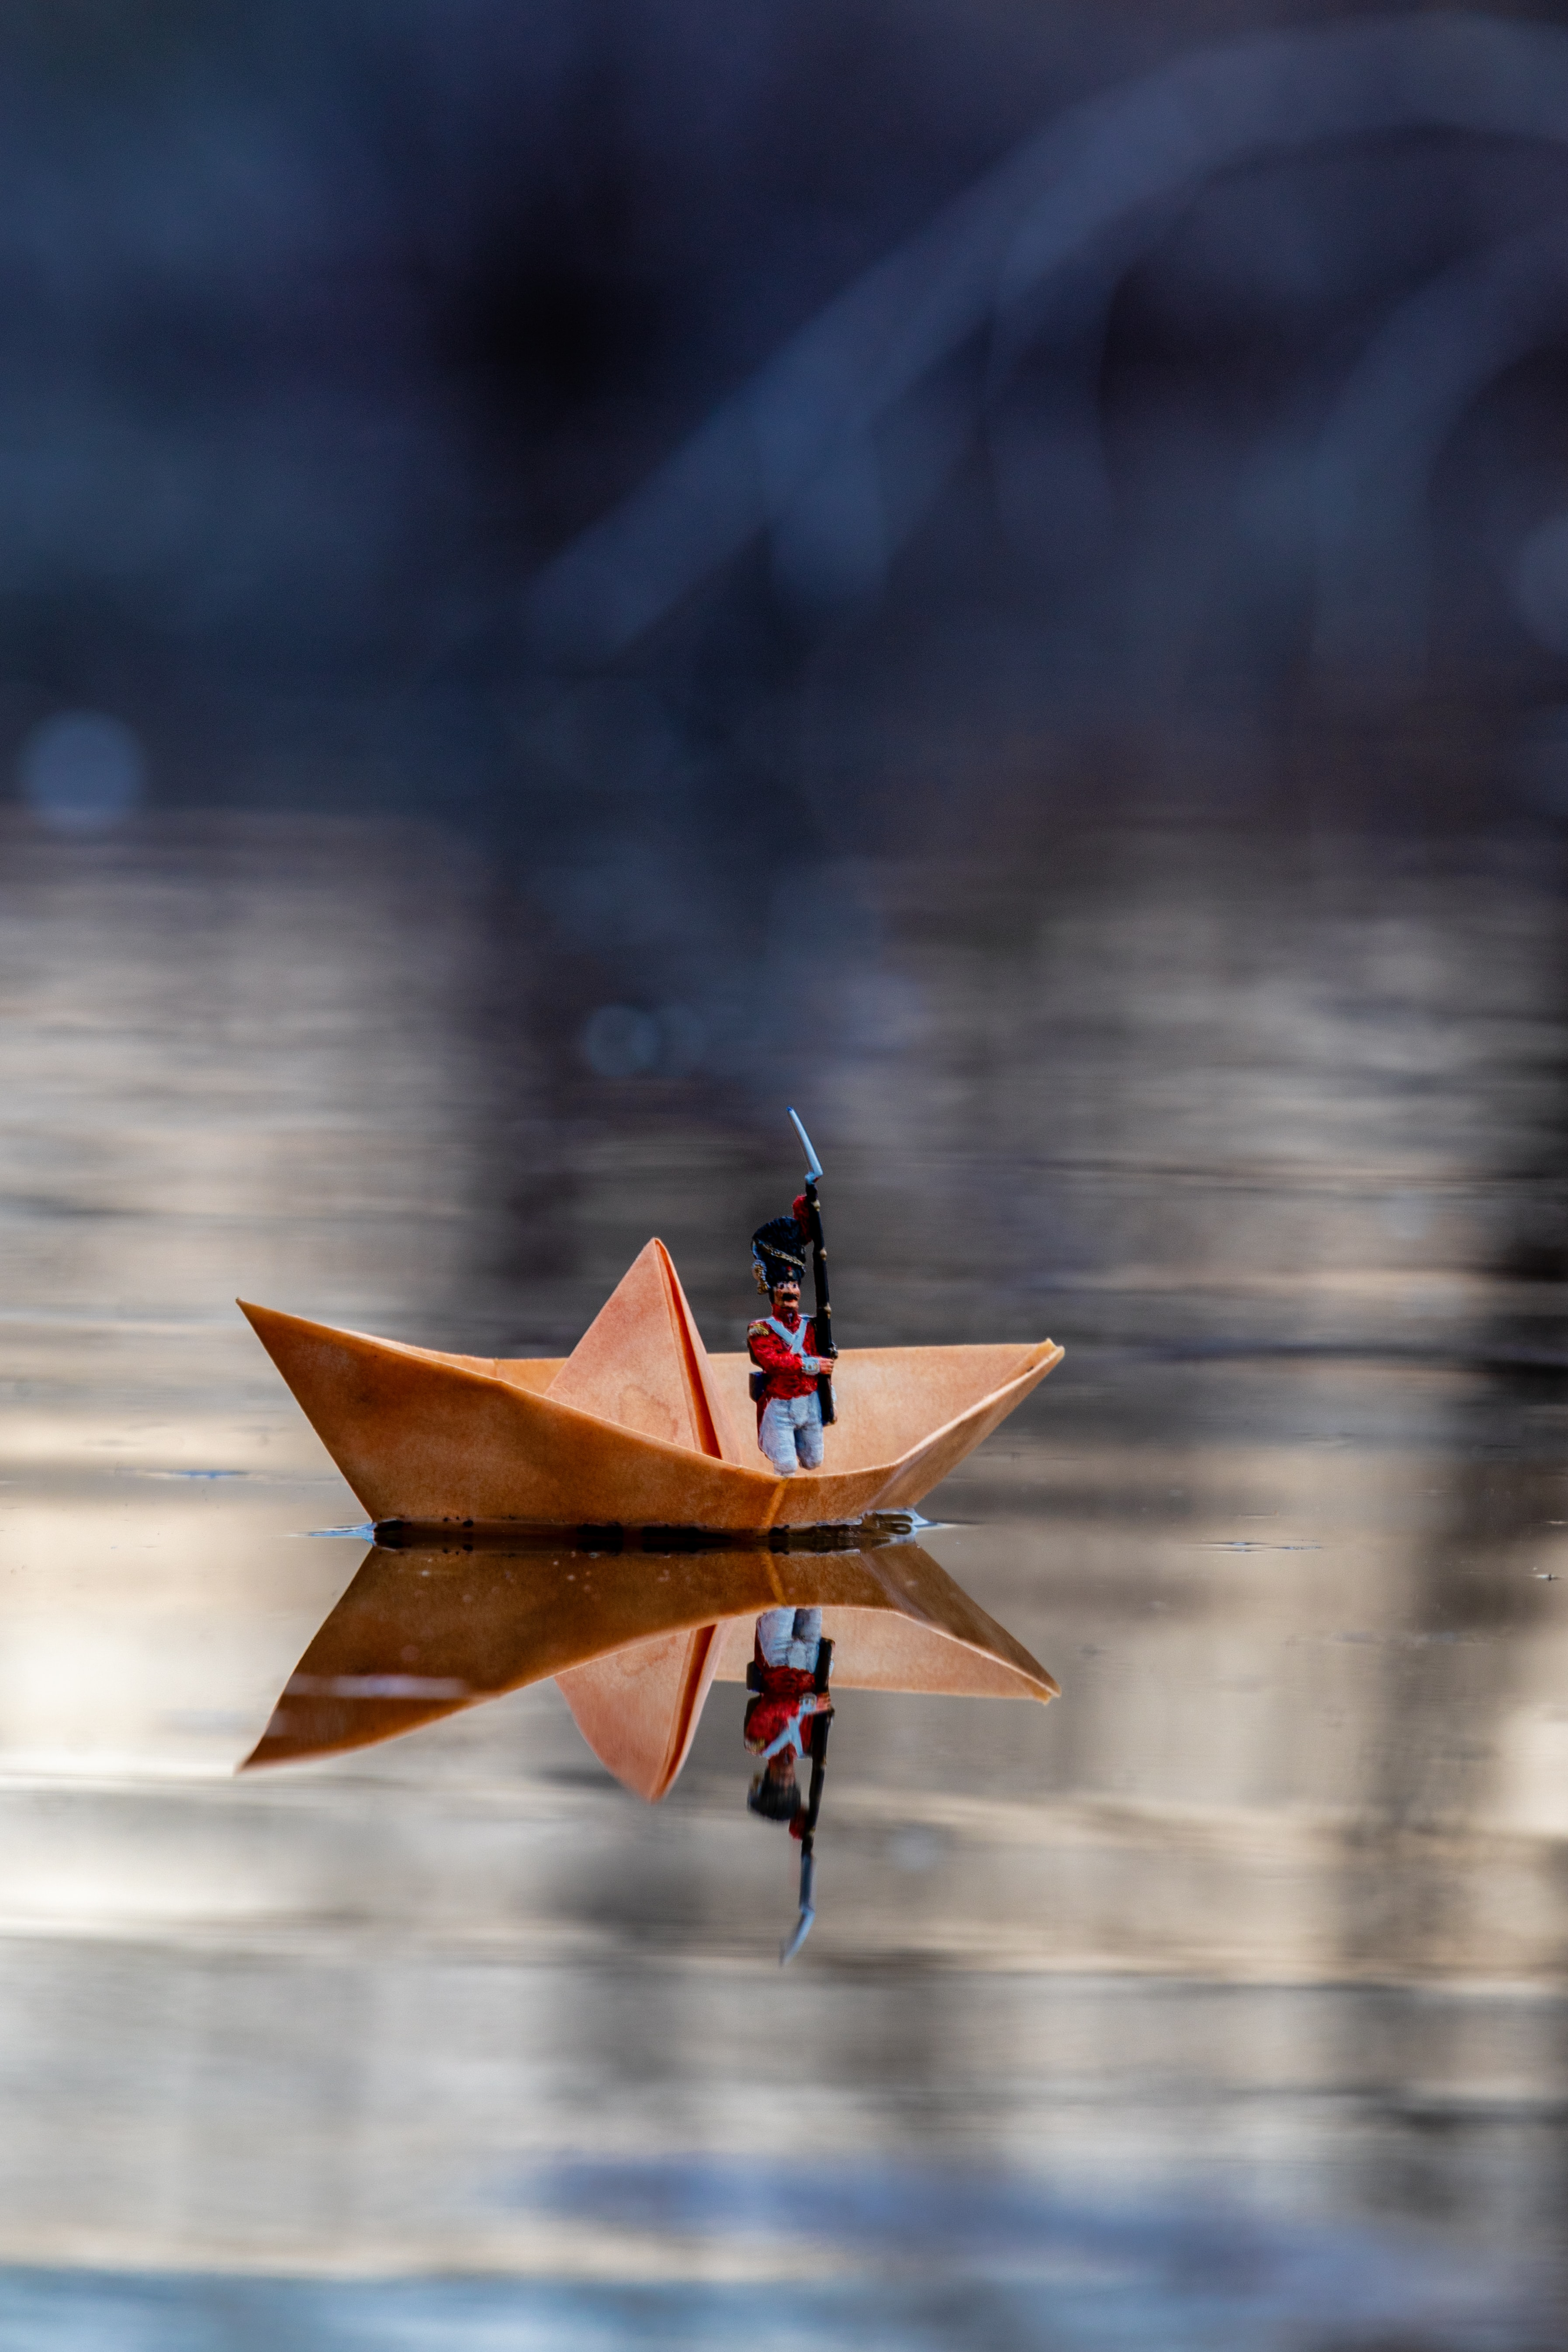 selective focus photography of toy in paper boat on water